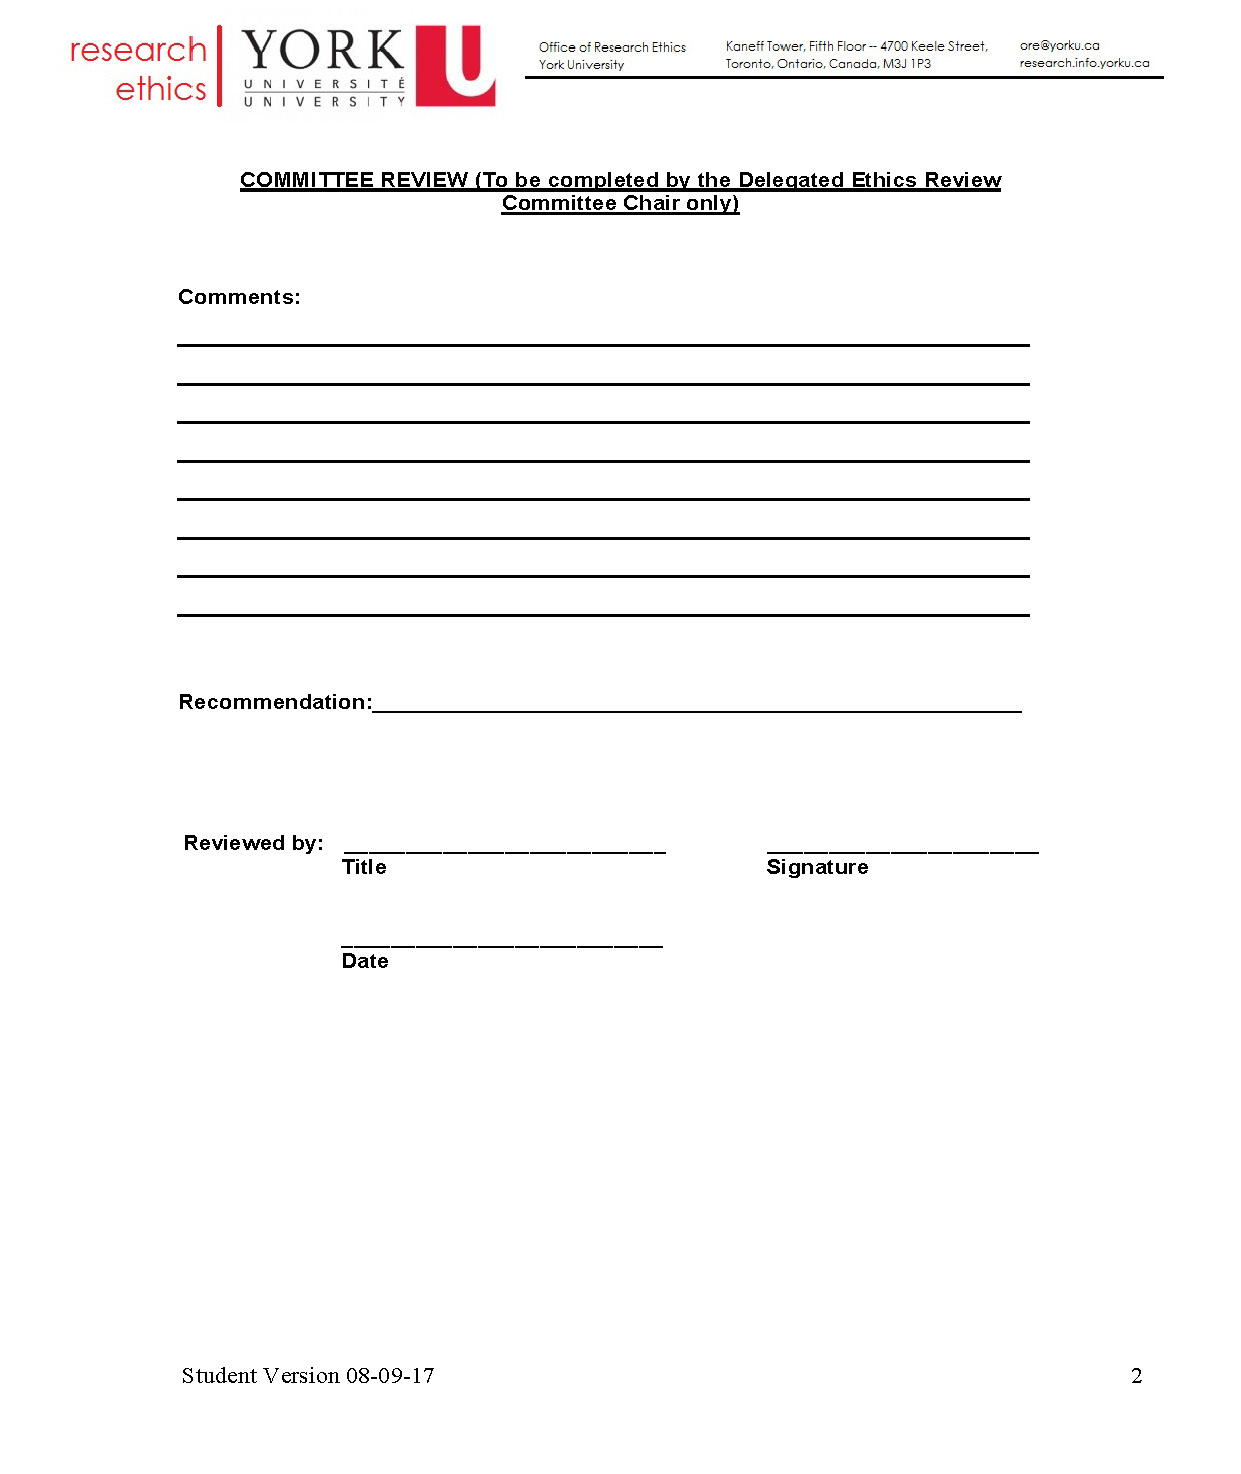 full-size image of the request for approval of an amendment to an approved protocol from research ethics page 2